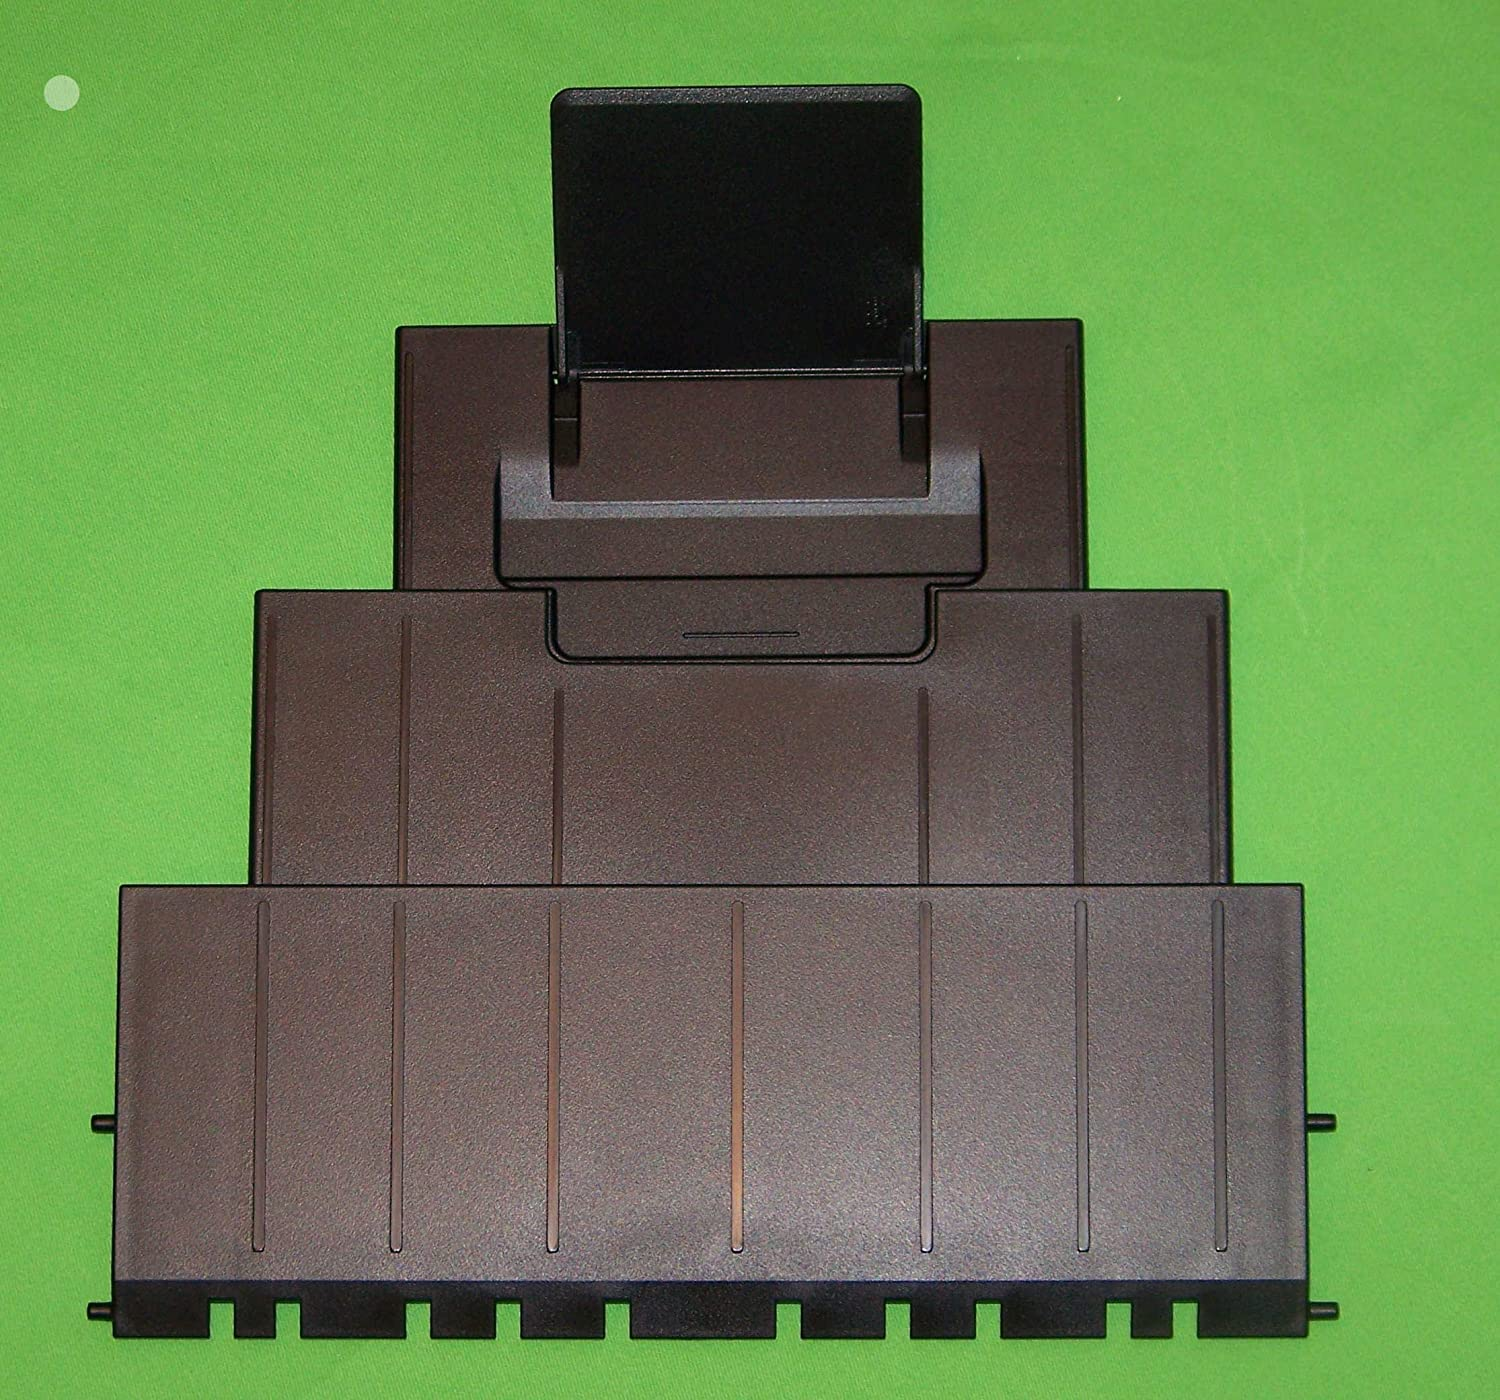 OEM Epson Stacker Assembly / Output Tray Specifically For: WorkForce 545, 630, 633, 635, 645, 840, 845